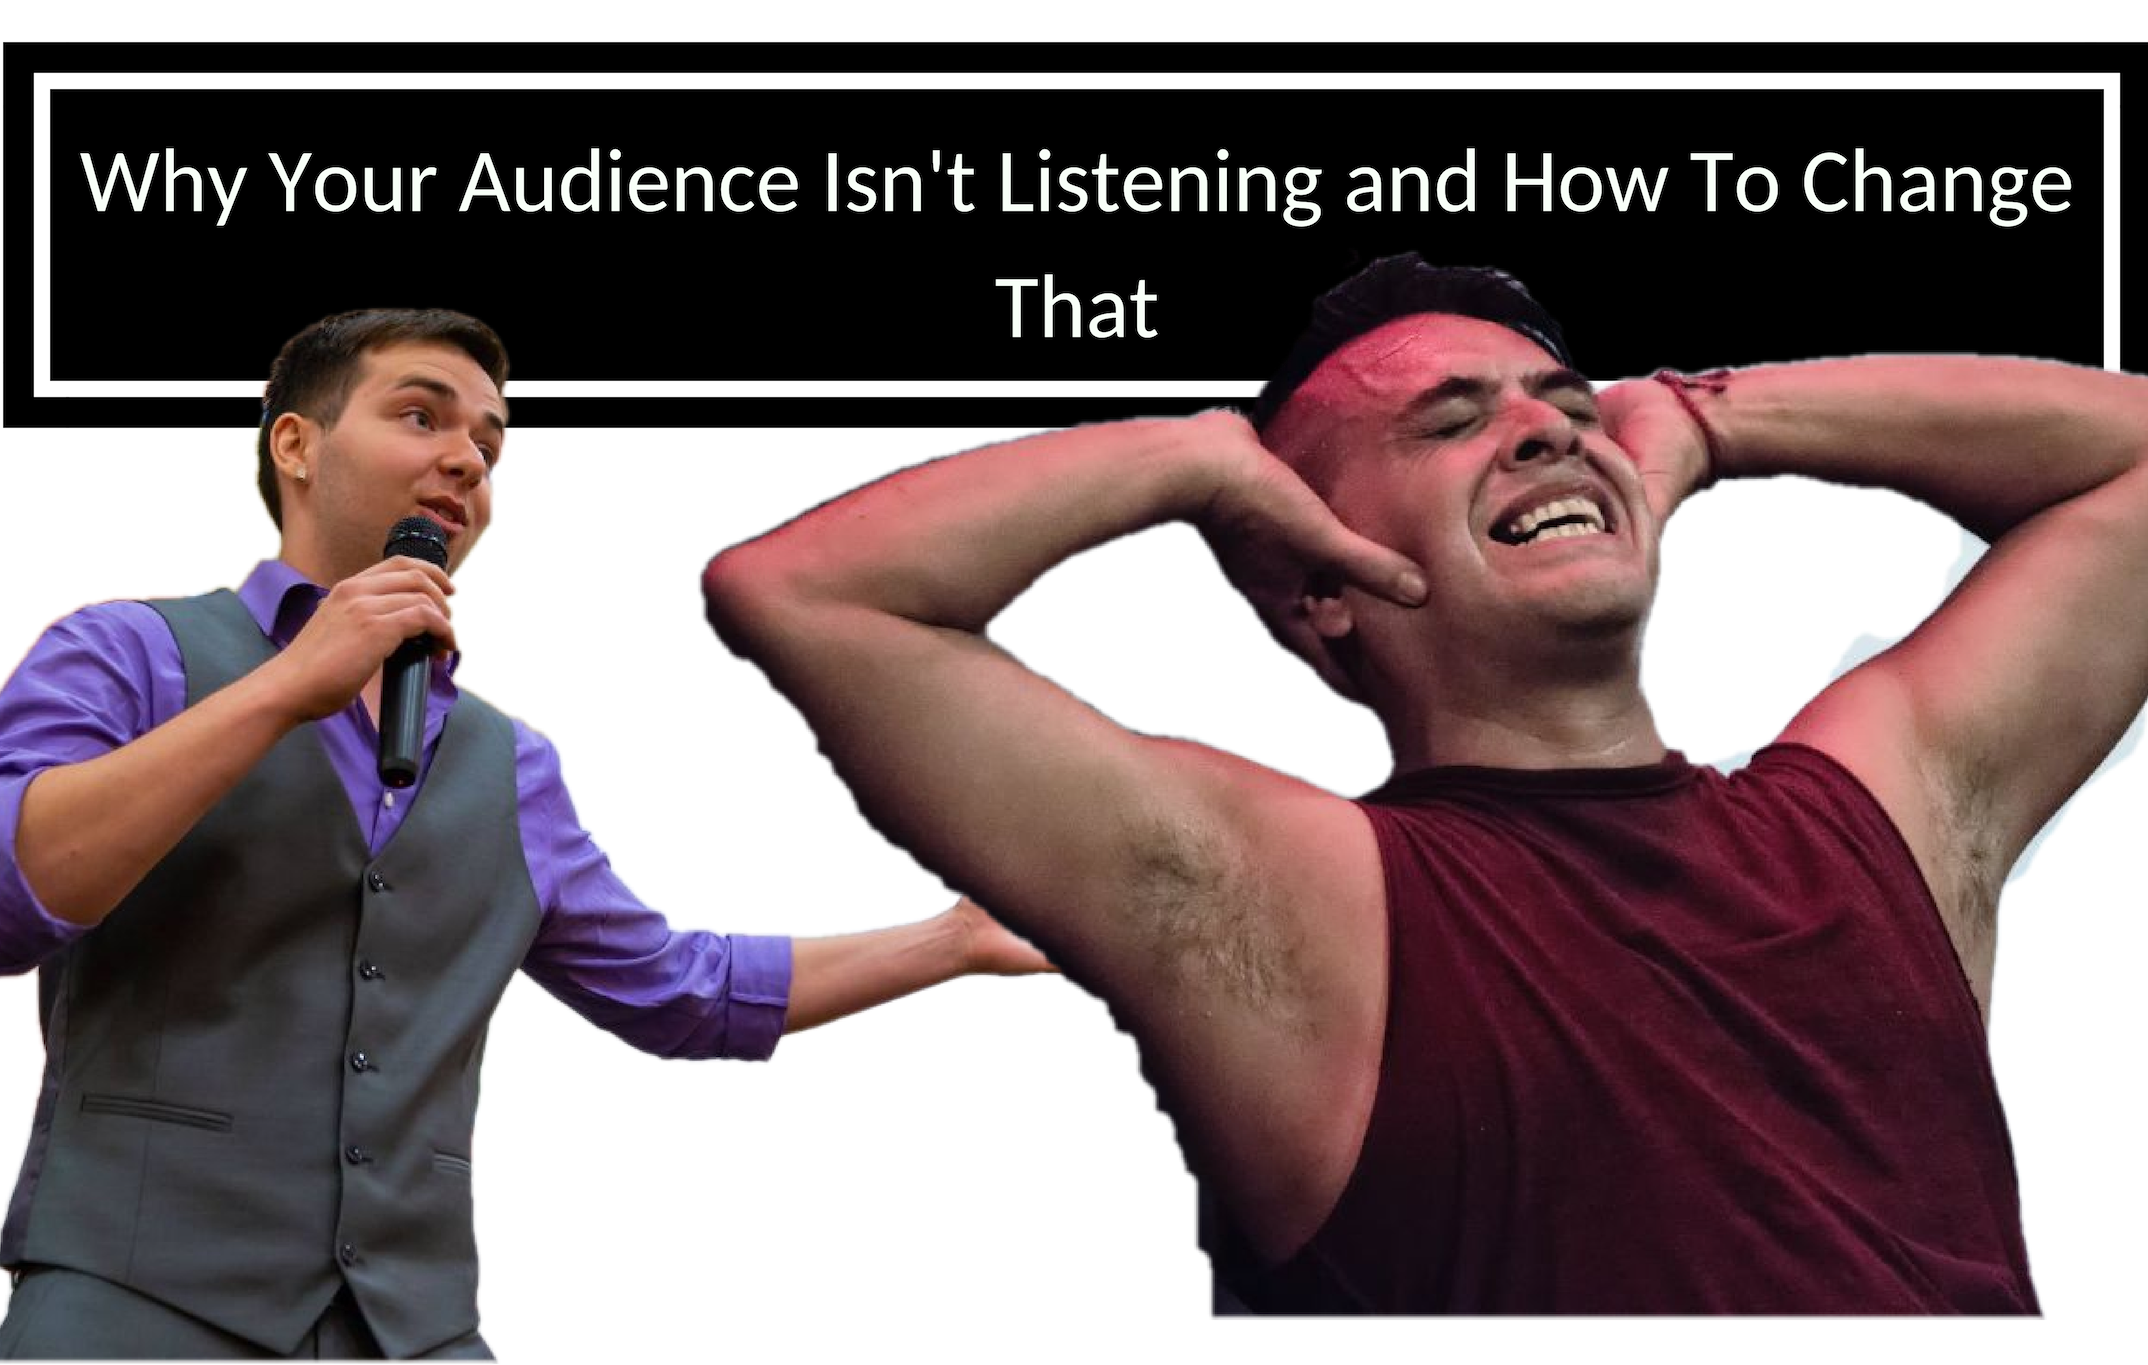 Why Your Audience Isn't Listening – And How To Change That